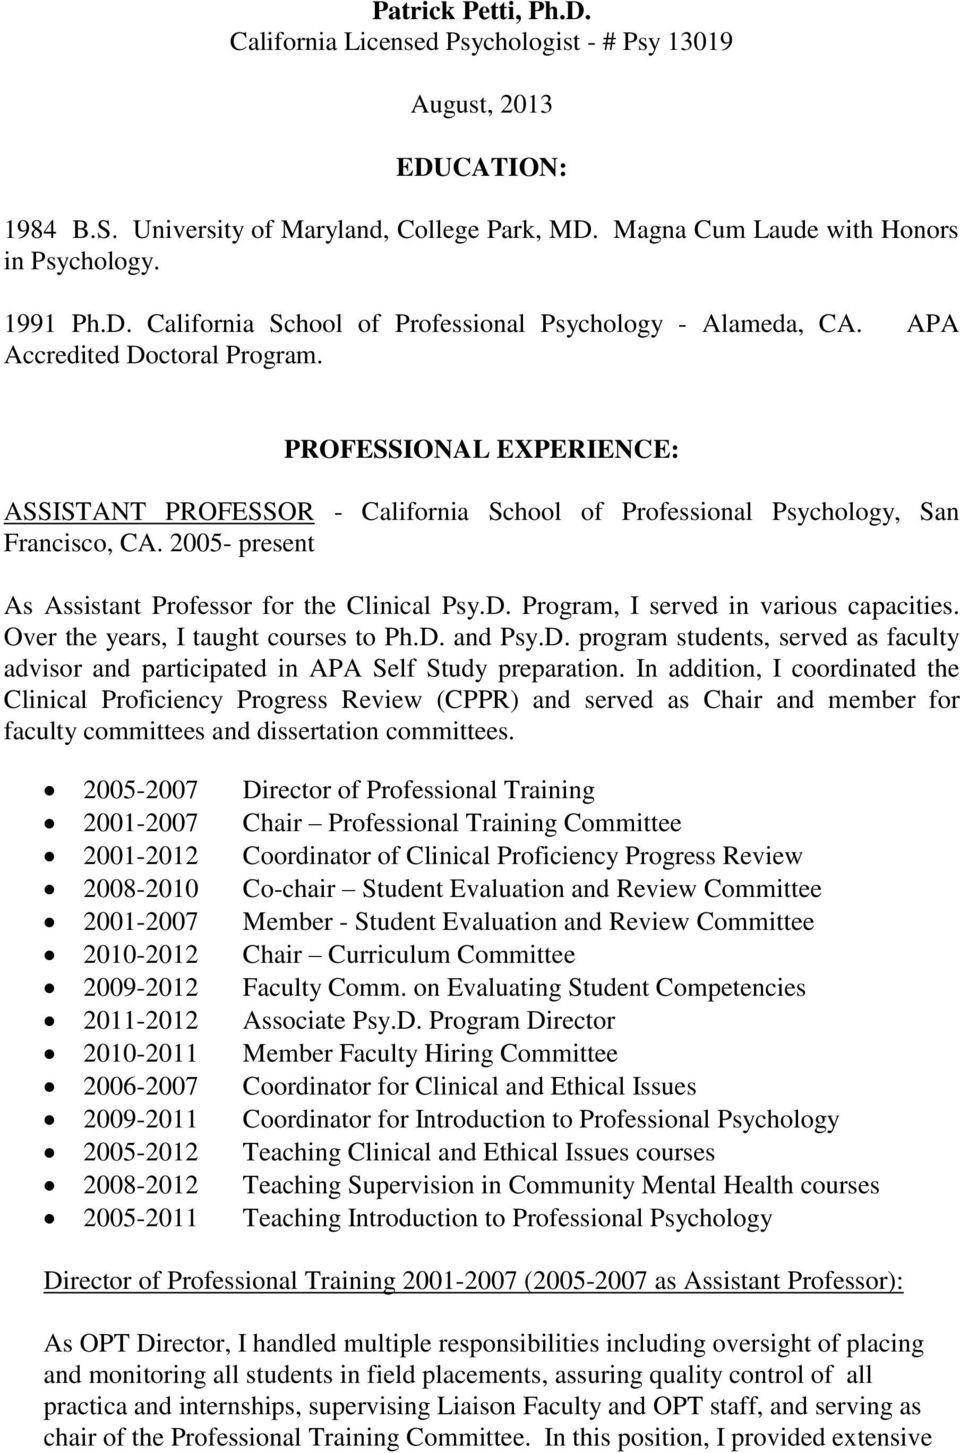 2005- present As Assistant Professor for the Clinical Psy.D. Program, I served in various capacities. Over the years, I taught courses to Ph.D. and Psy.D. program students, served as faculty advisor and participated in APA Self Study preparation.